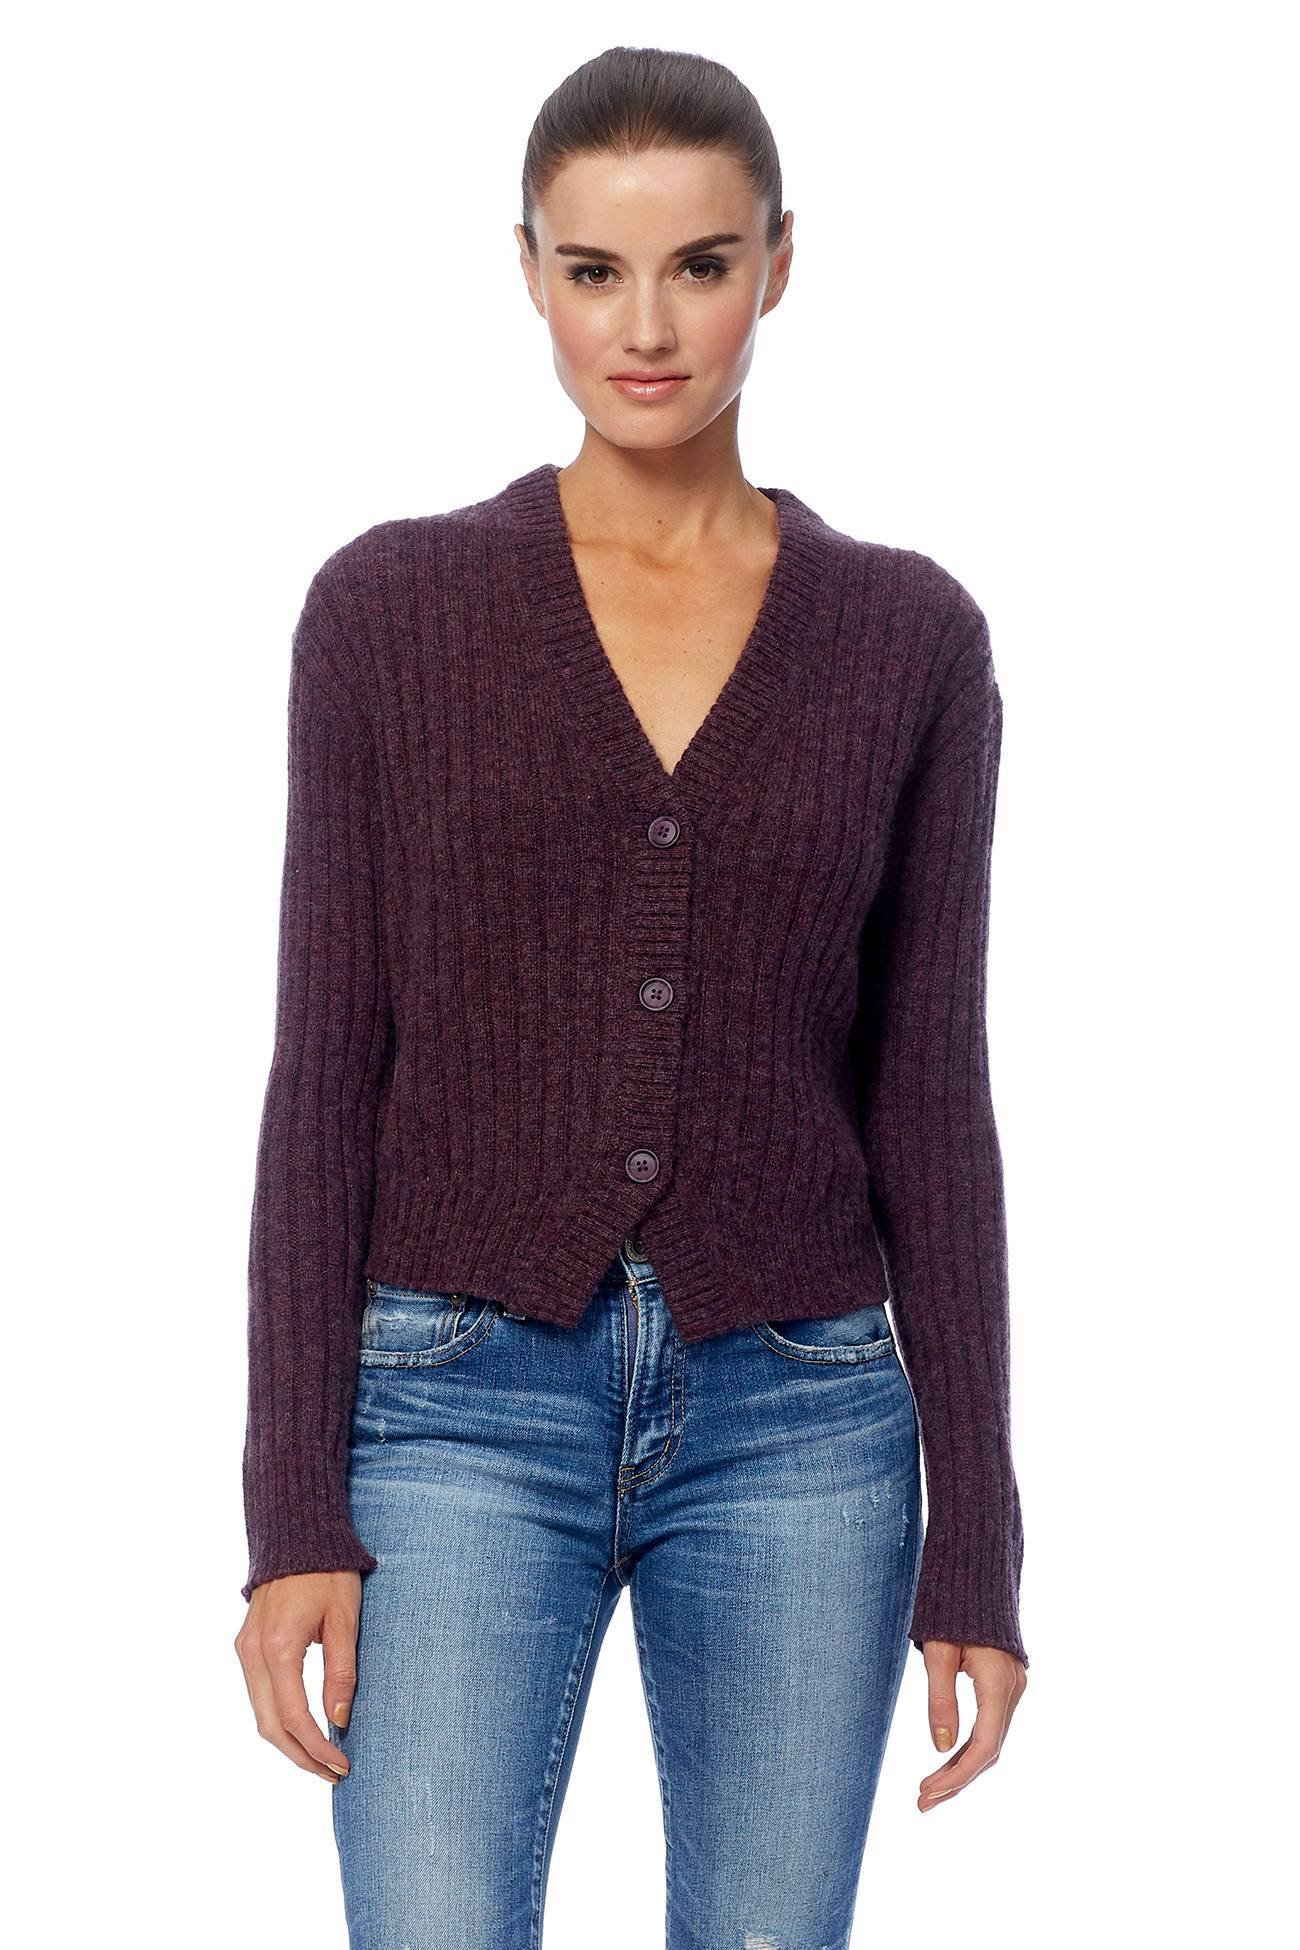 Poppy Button Front Ribbed Cardi - Aubergine